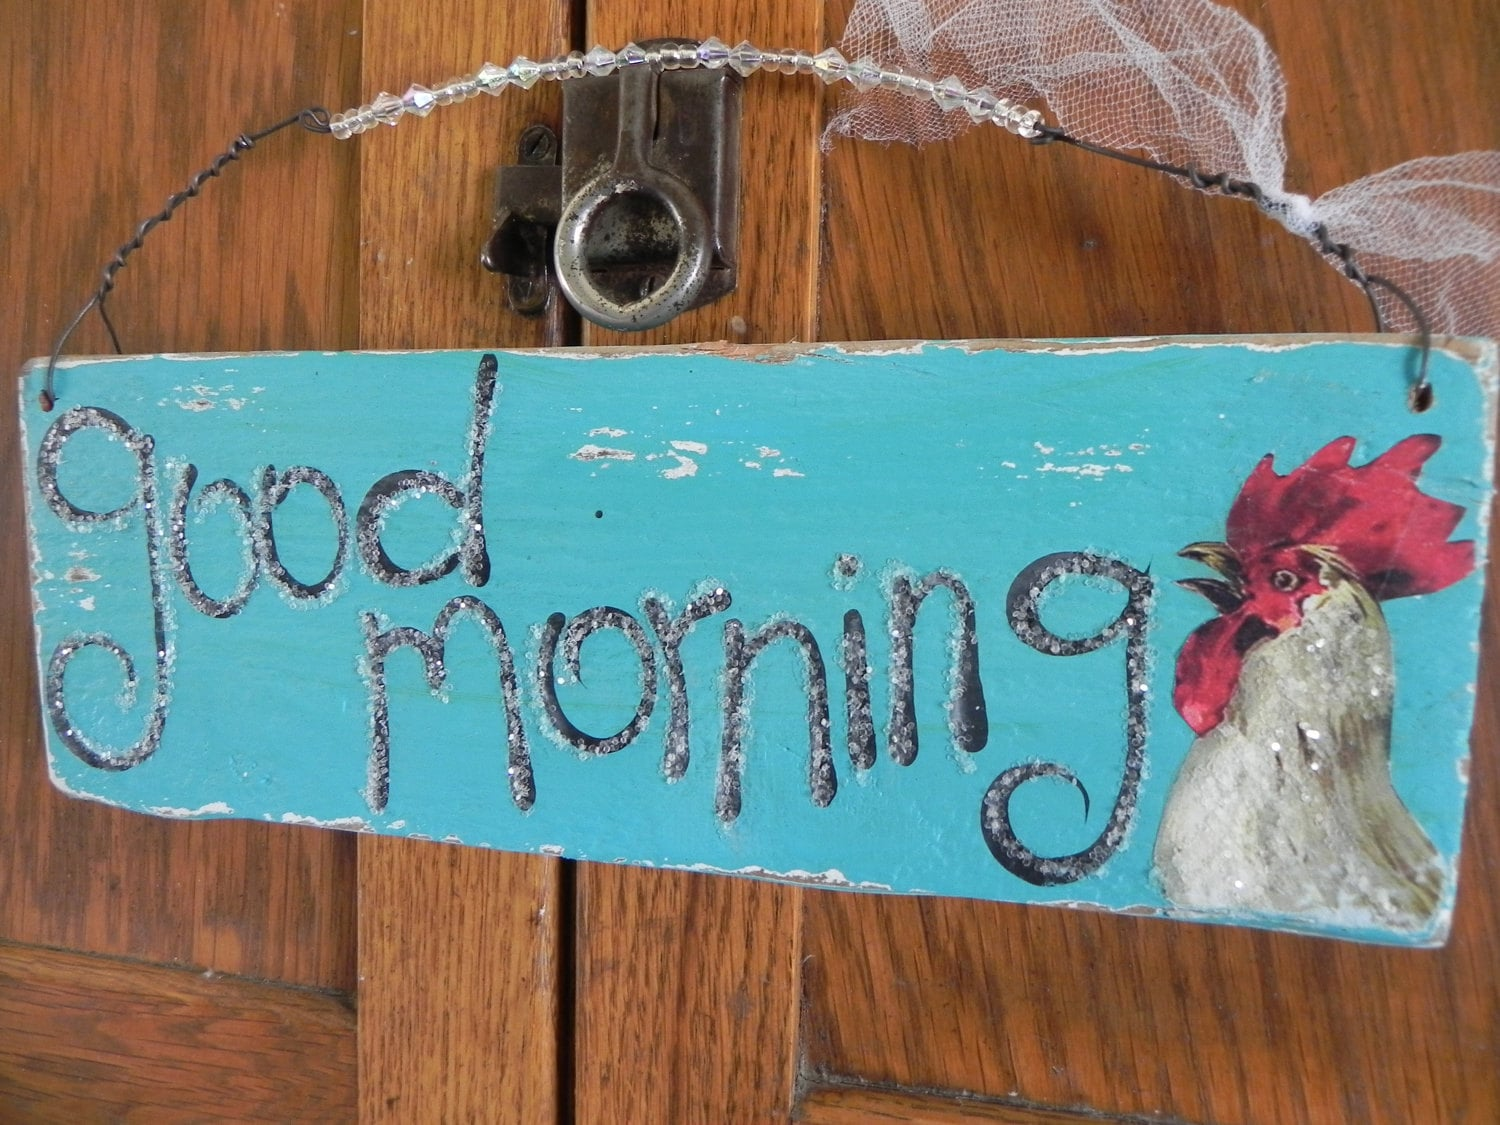 Good Morning Vintage Photos : Good morning vintage rooster aqua turquoise blue wood sign